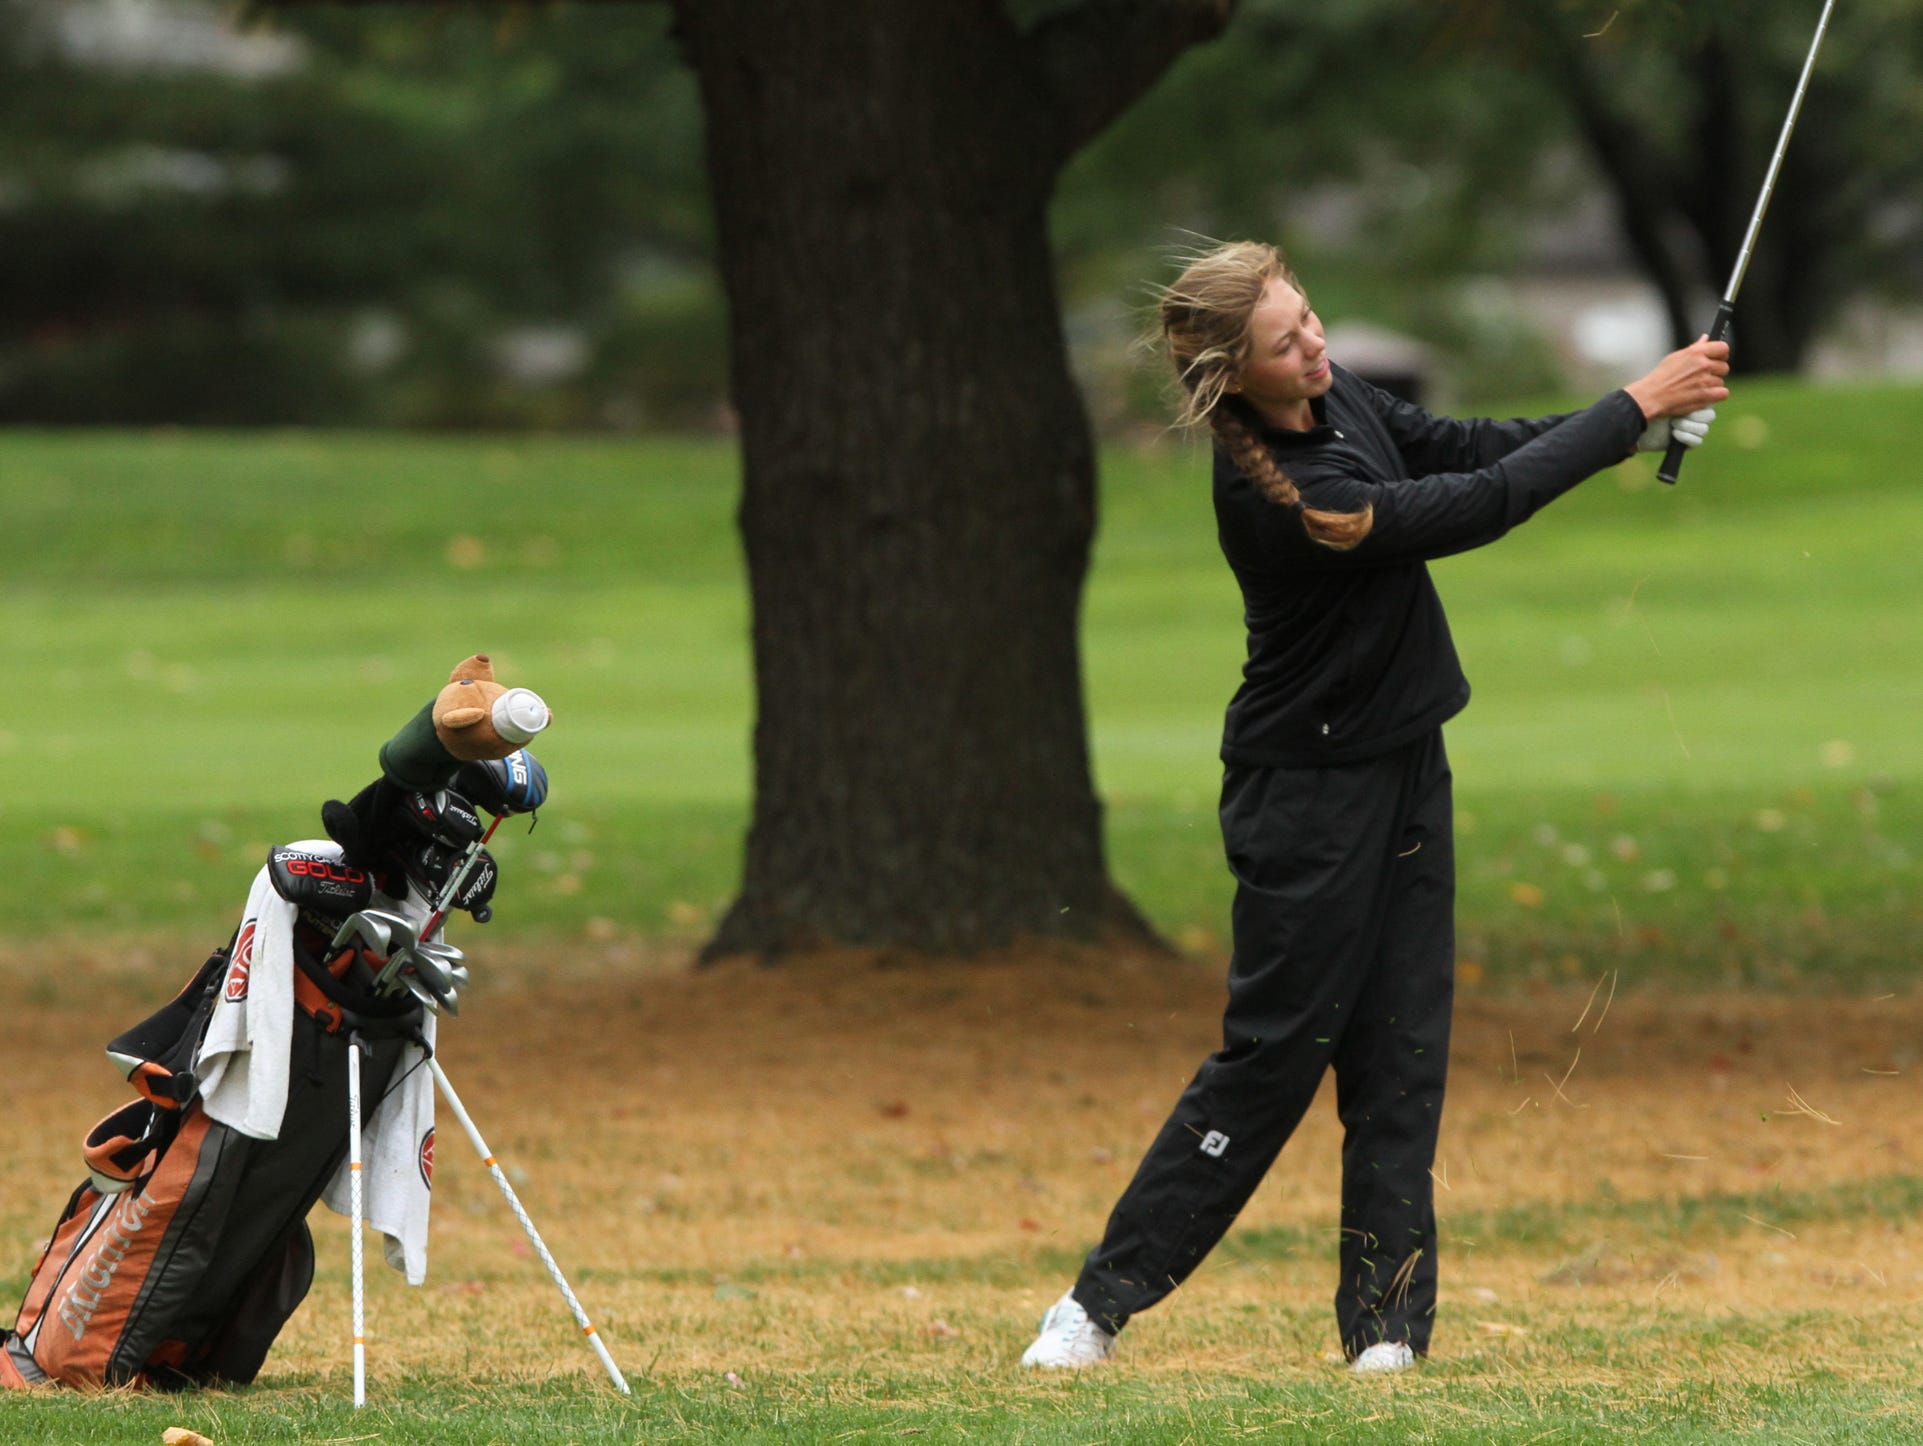 Brighton's Julia Dean became the first Bulldogs golfer to earn medalist honors at the Division 1 state golf meet on Saturday. She rallied from five strokes back on Saturday to win by a stroke. As a team, the Bulldogs finished ninth.